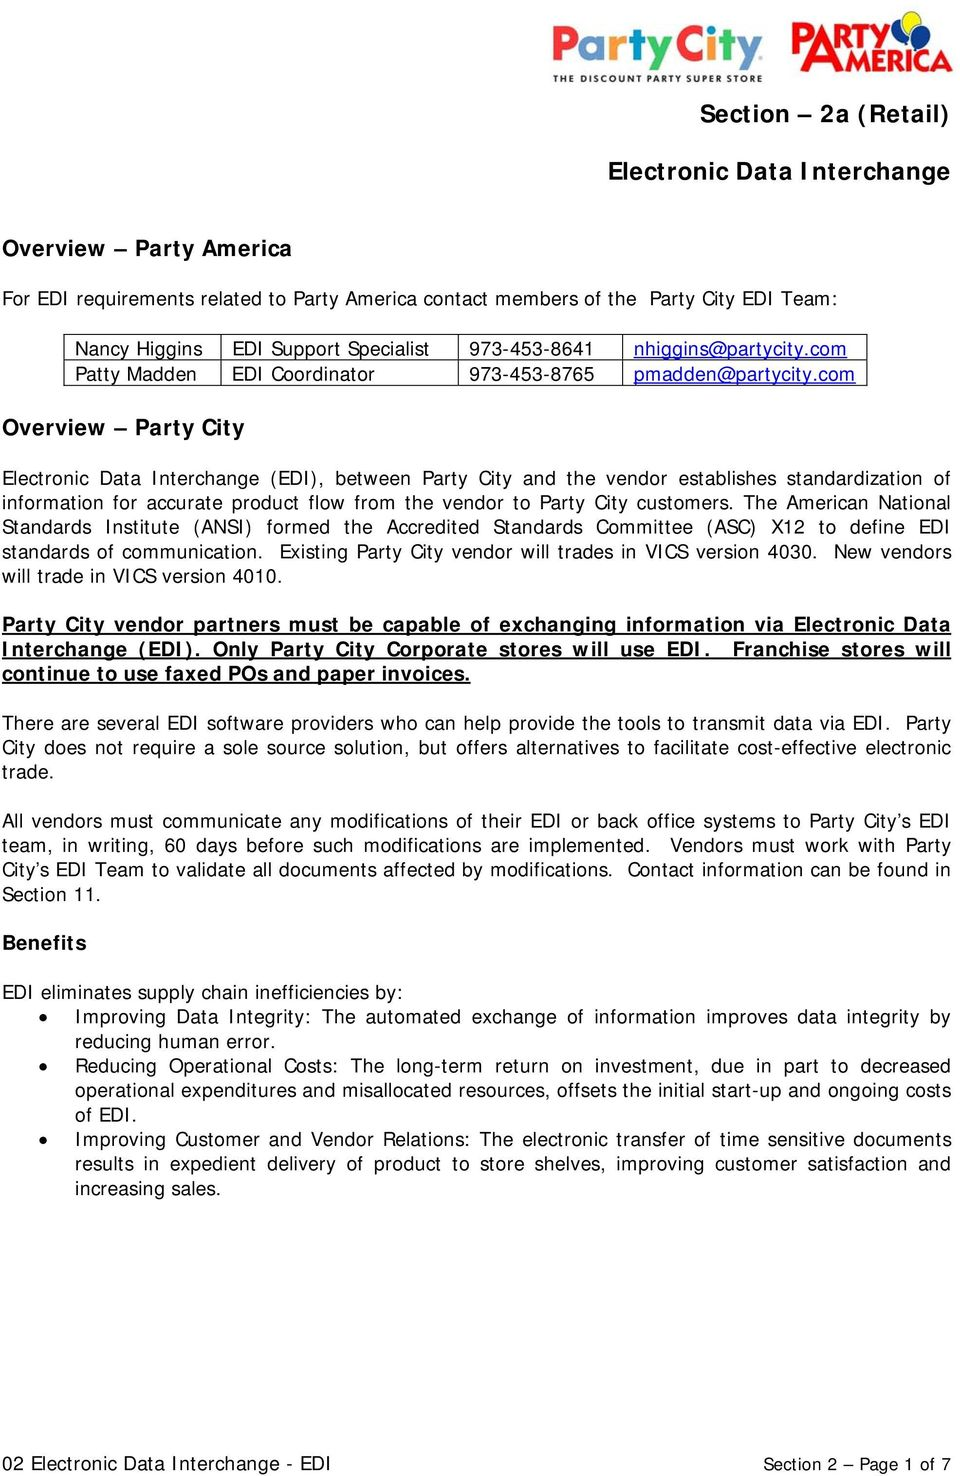 com Overview Party City Electronic Data Interchange (EDI), between Party City and the vendor establishes standardization of information for accurate product flow from the vendor to Party City